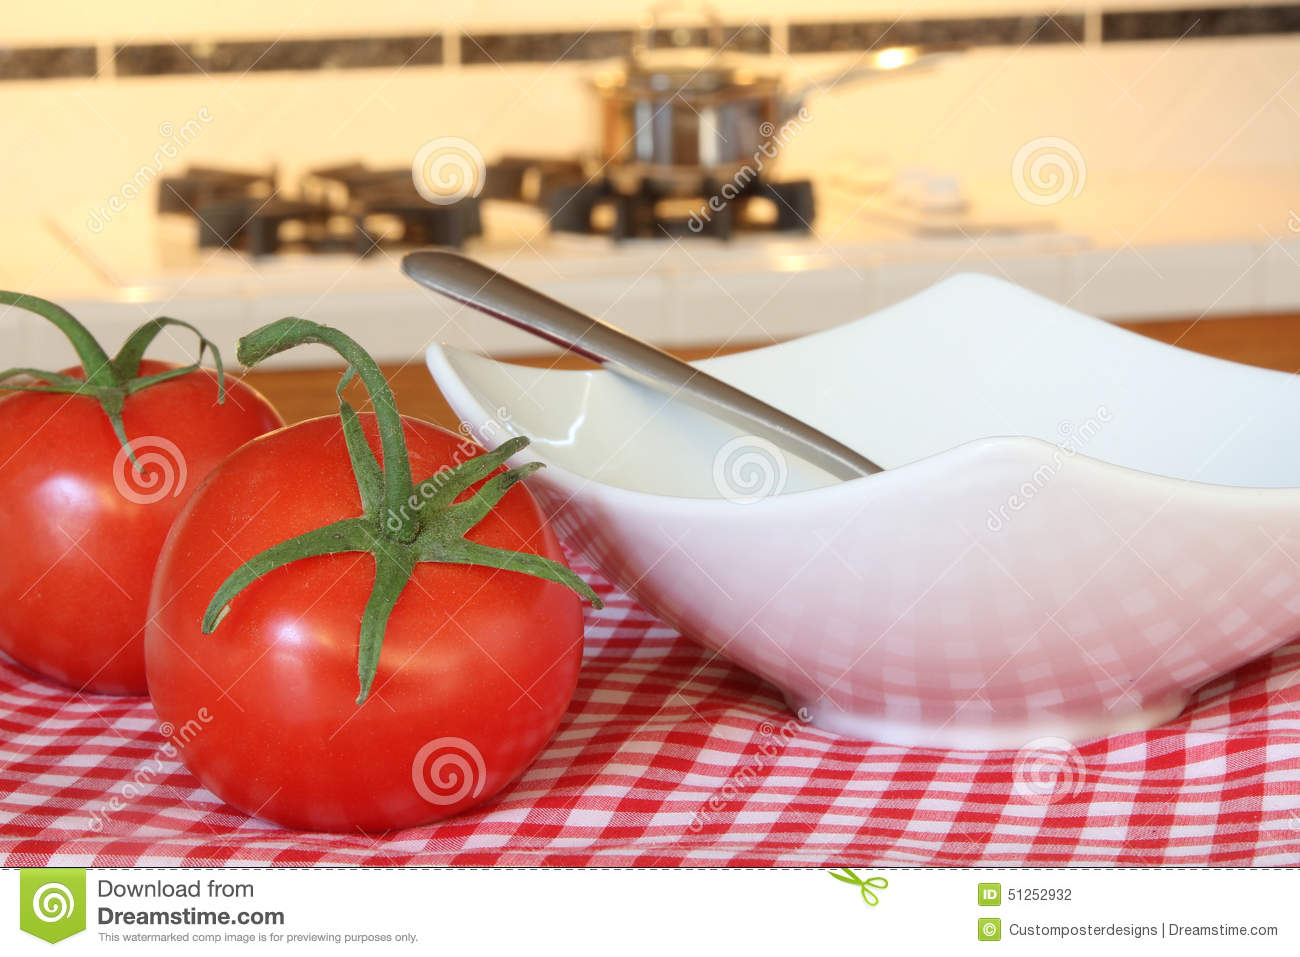 Download Tomatoes And A Soup Bowl With A Cooking Pan In The Background. Stock Photo - Image of home, lunch: 51252932